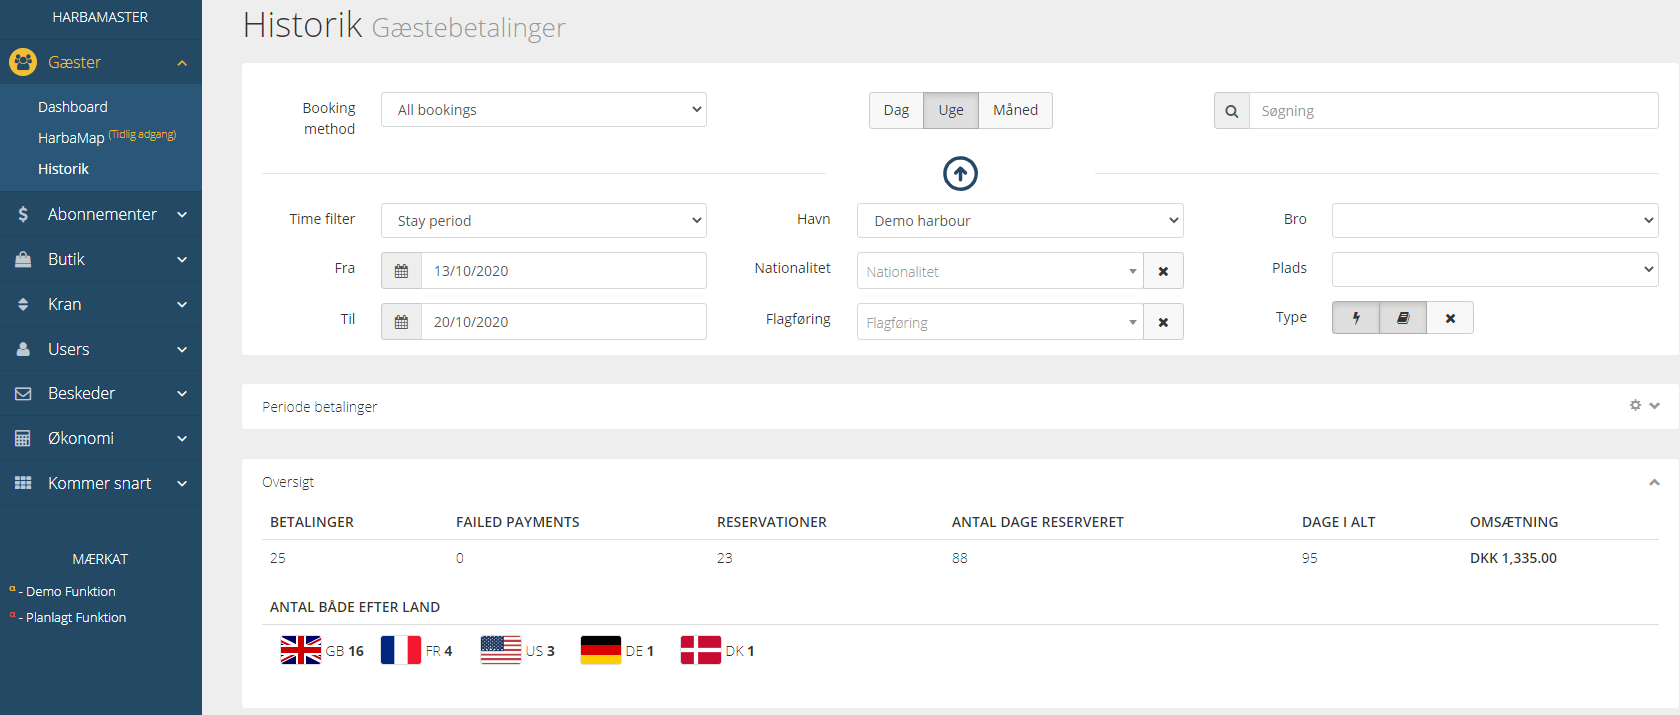 HarbaMaster dashboard screenshot showing updated history section in Danish language